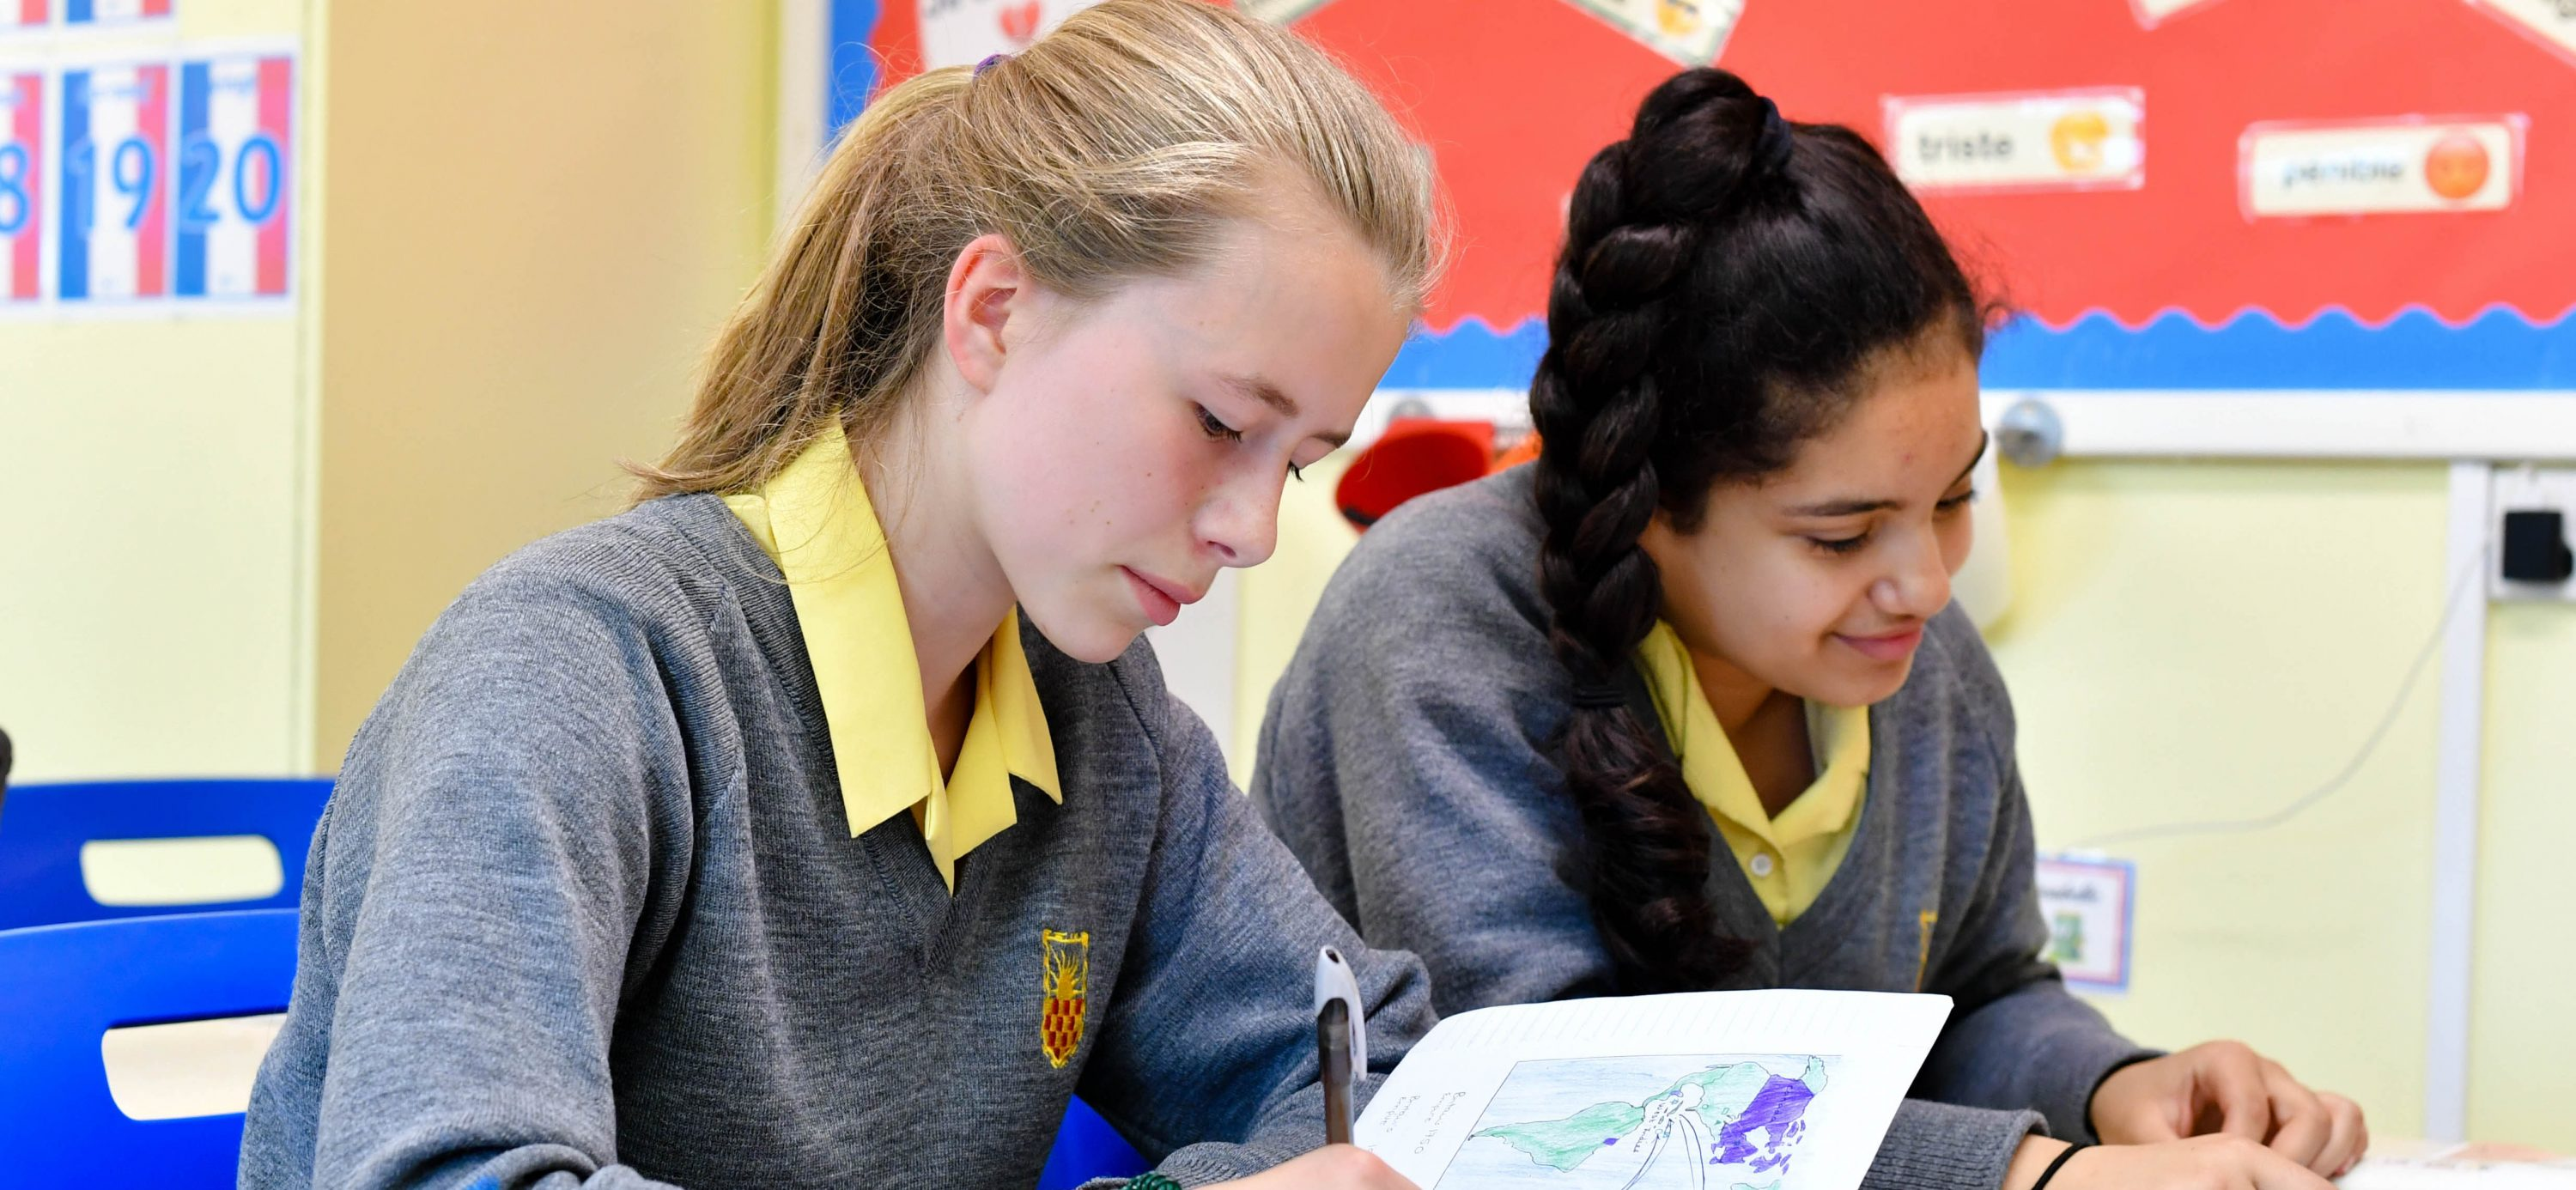 Why choose RGS Dodderhill?